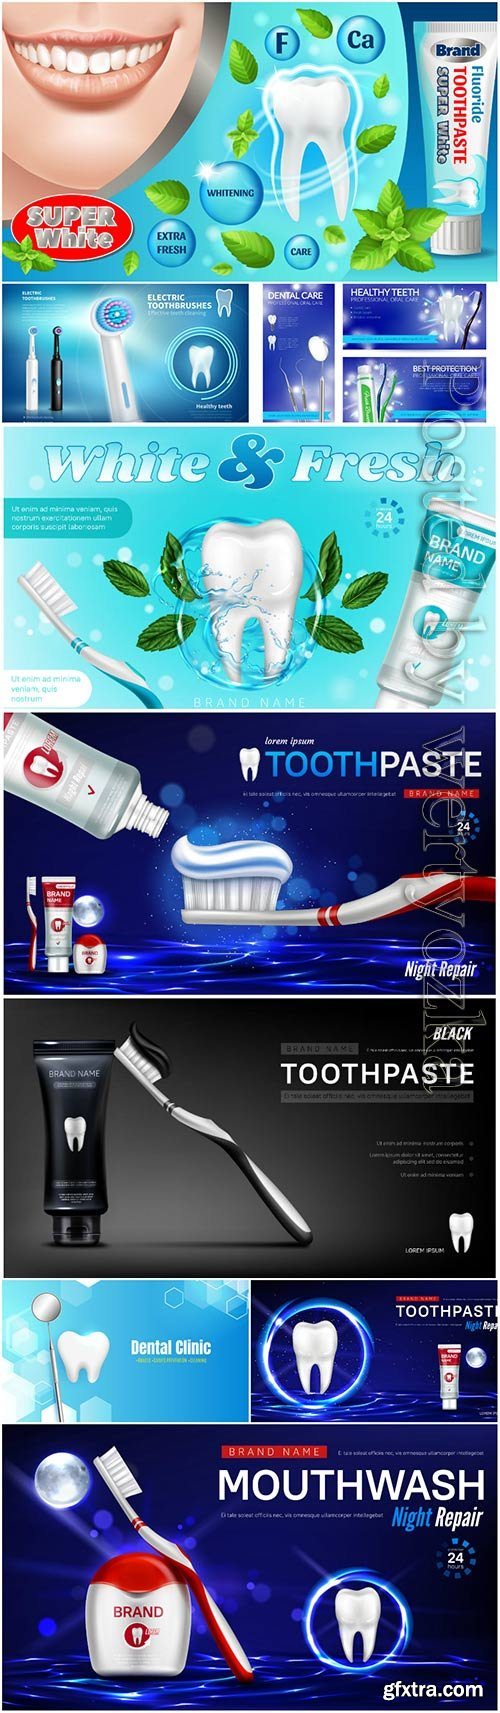 Toothpaste advertising vector posters, dentistry